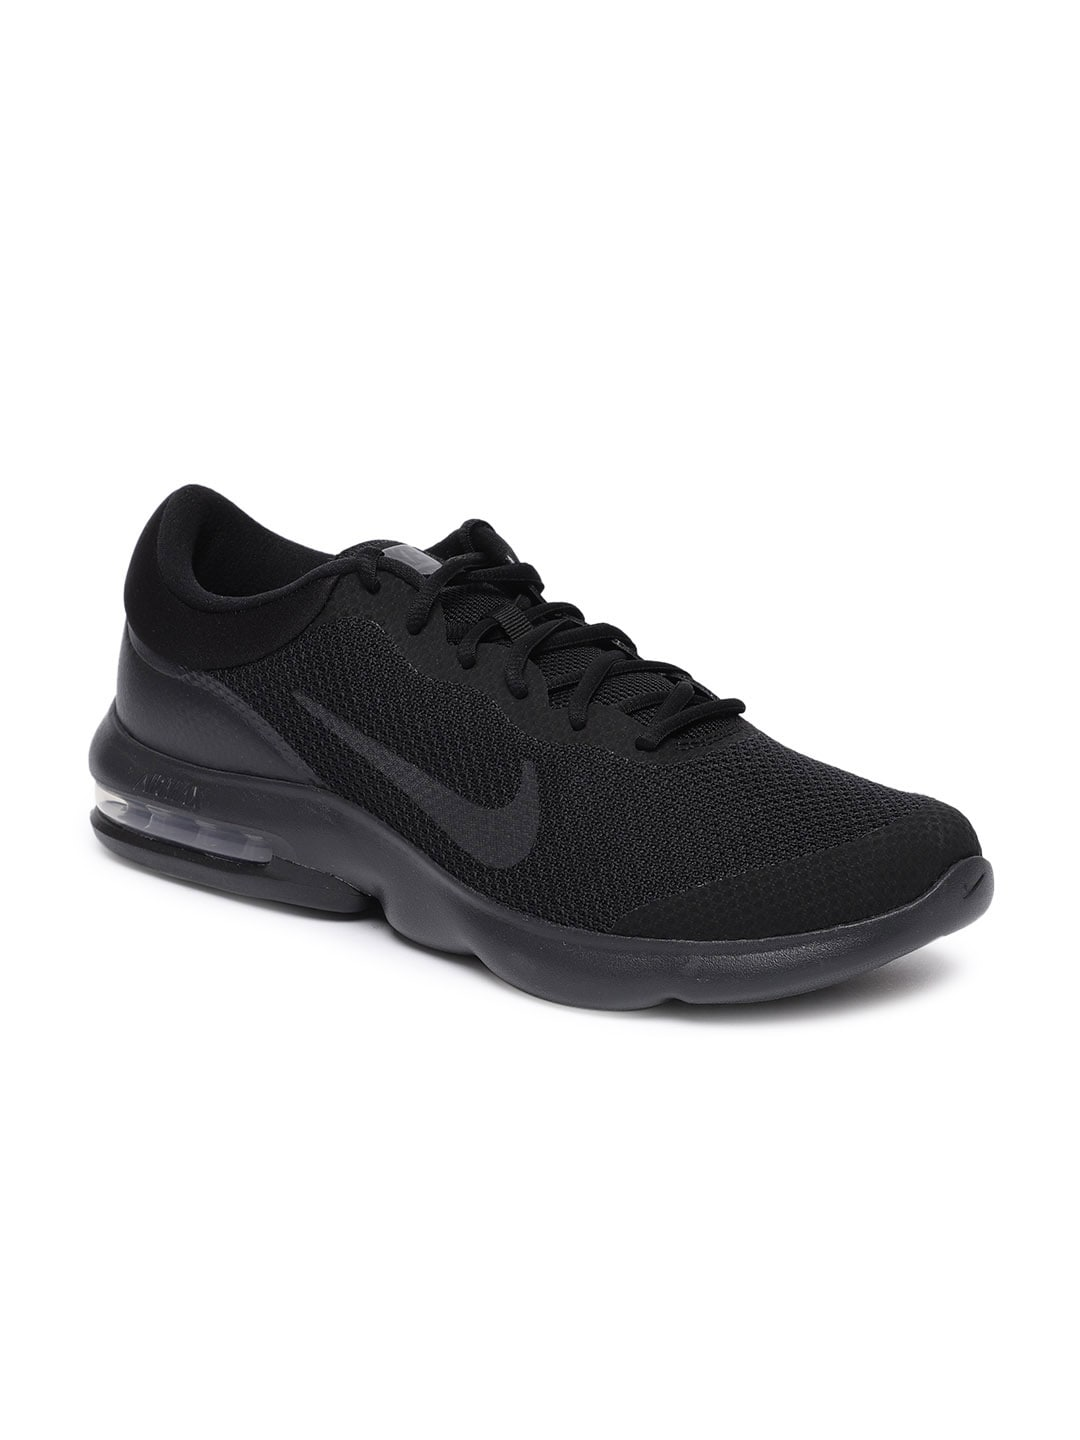 size 40 3dc97 c7240 Nike - Shop for Nike Apparels Online in India   Myntra